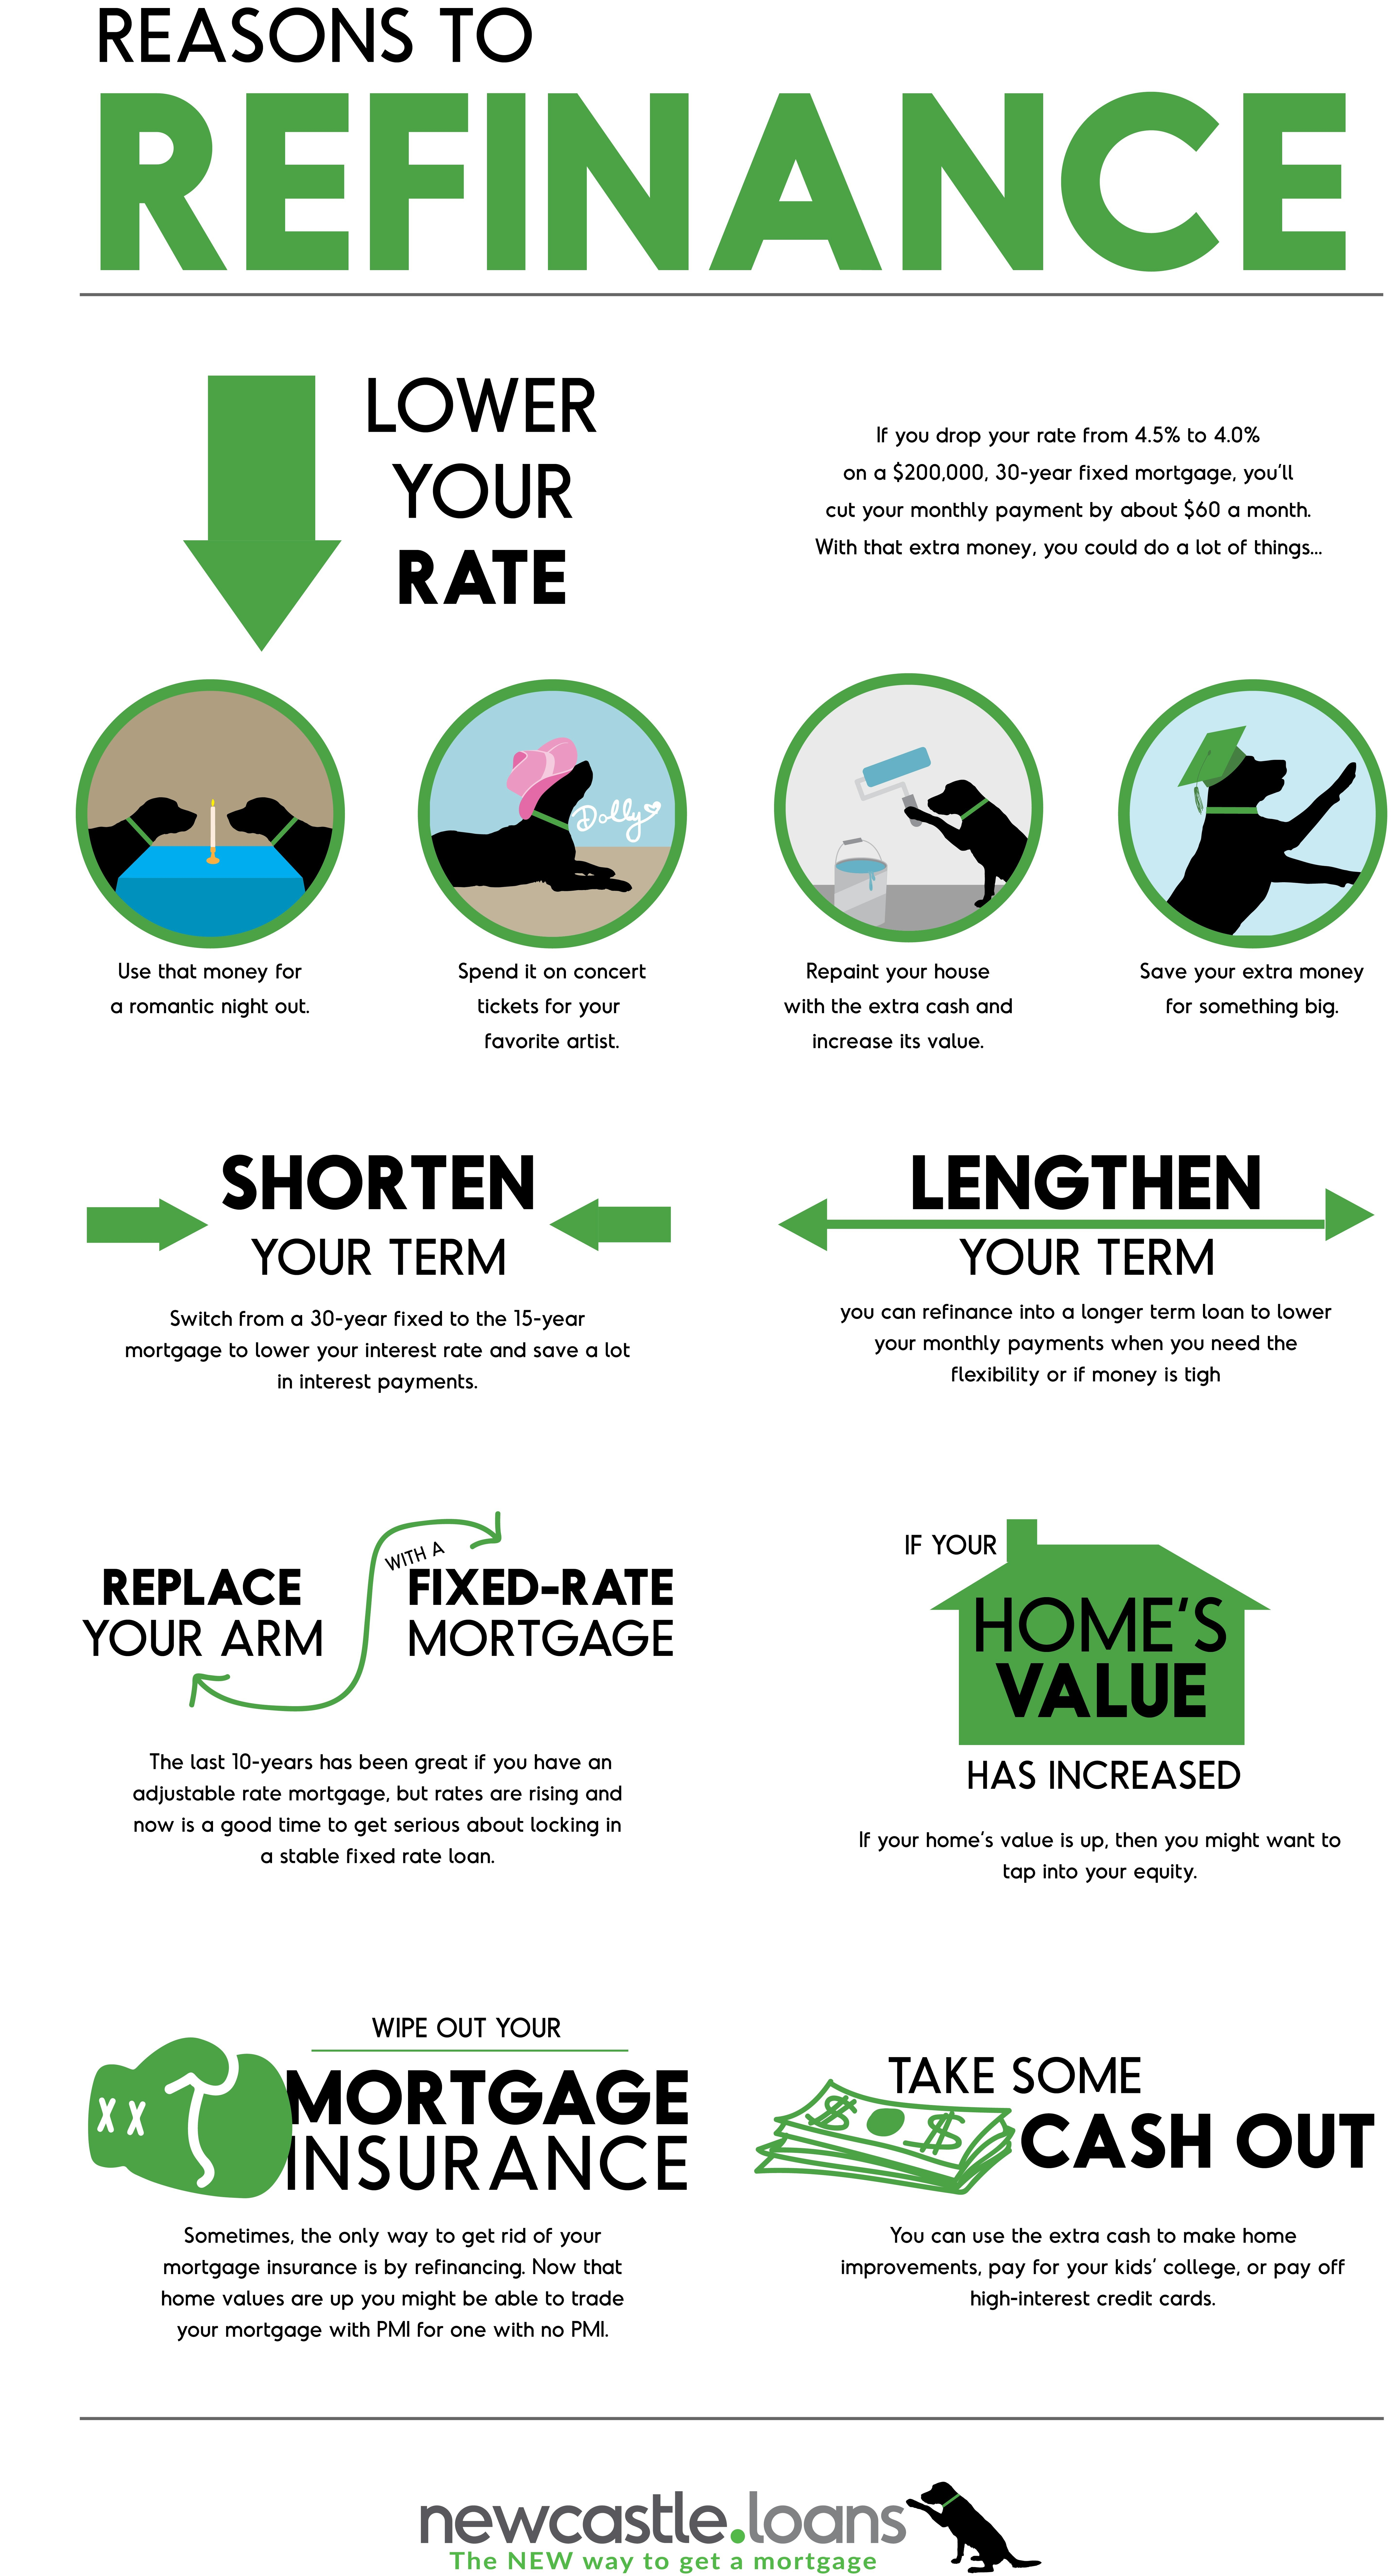 Reasons to Refinance infographic